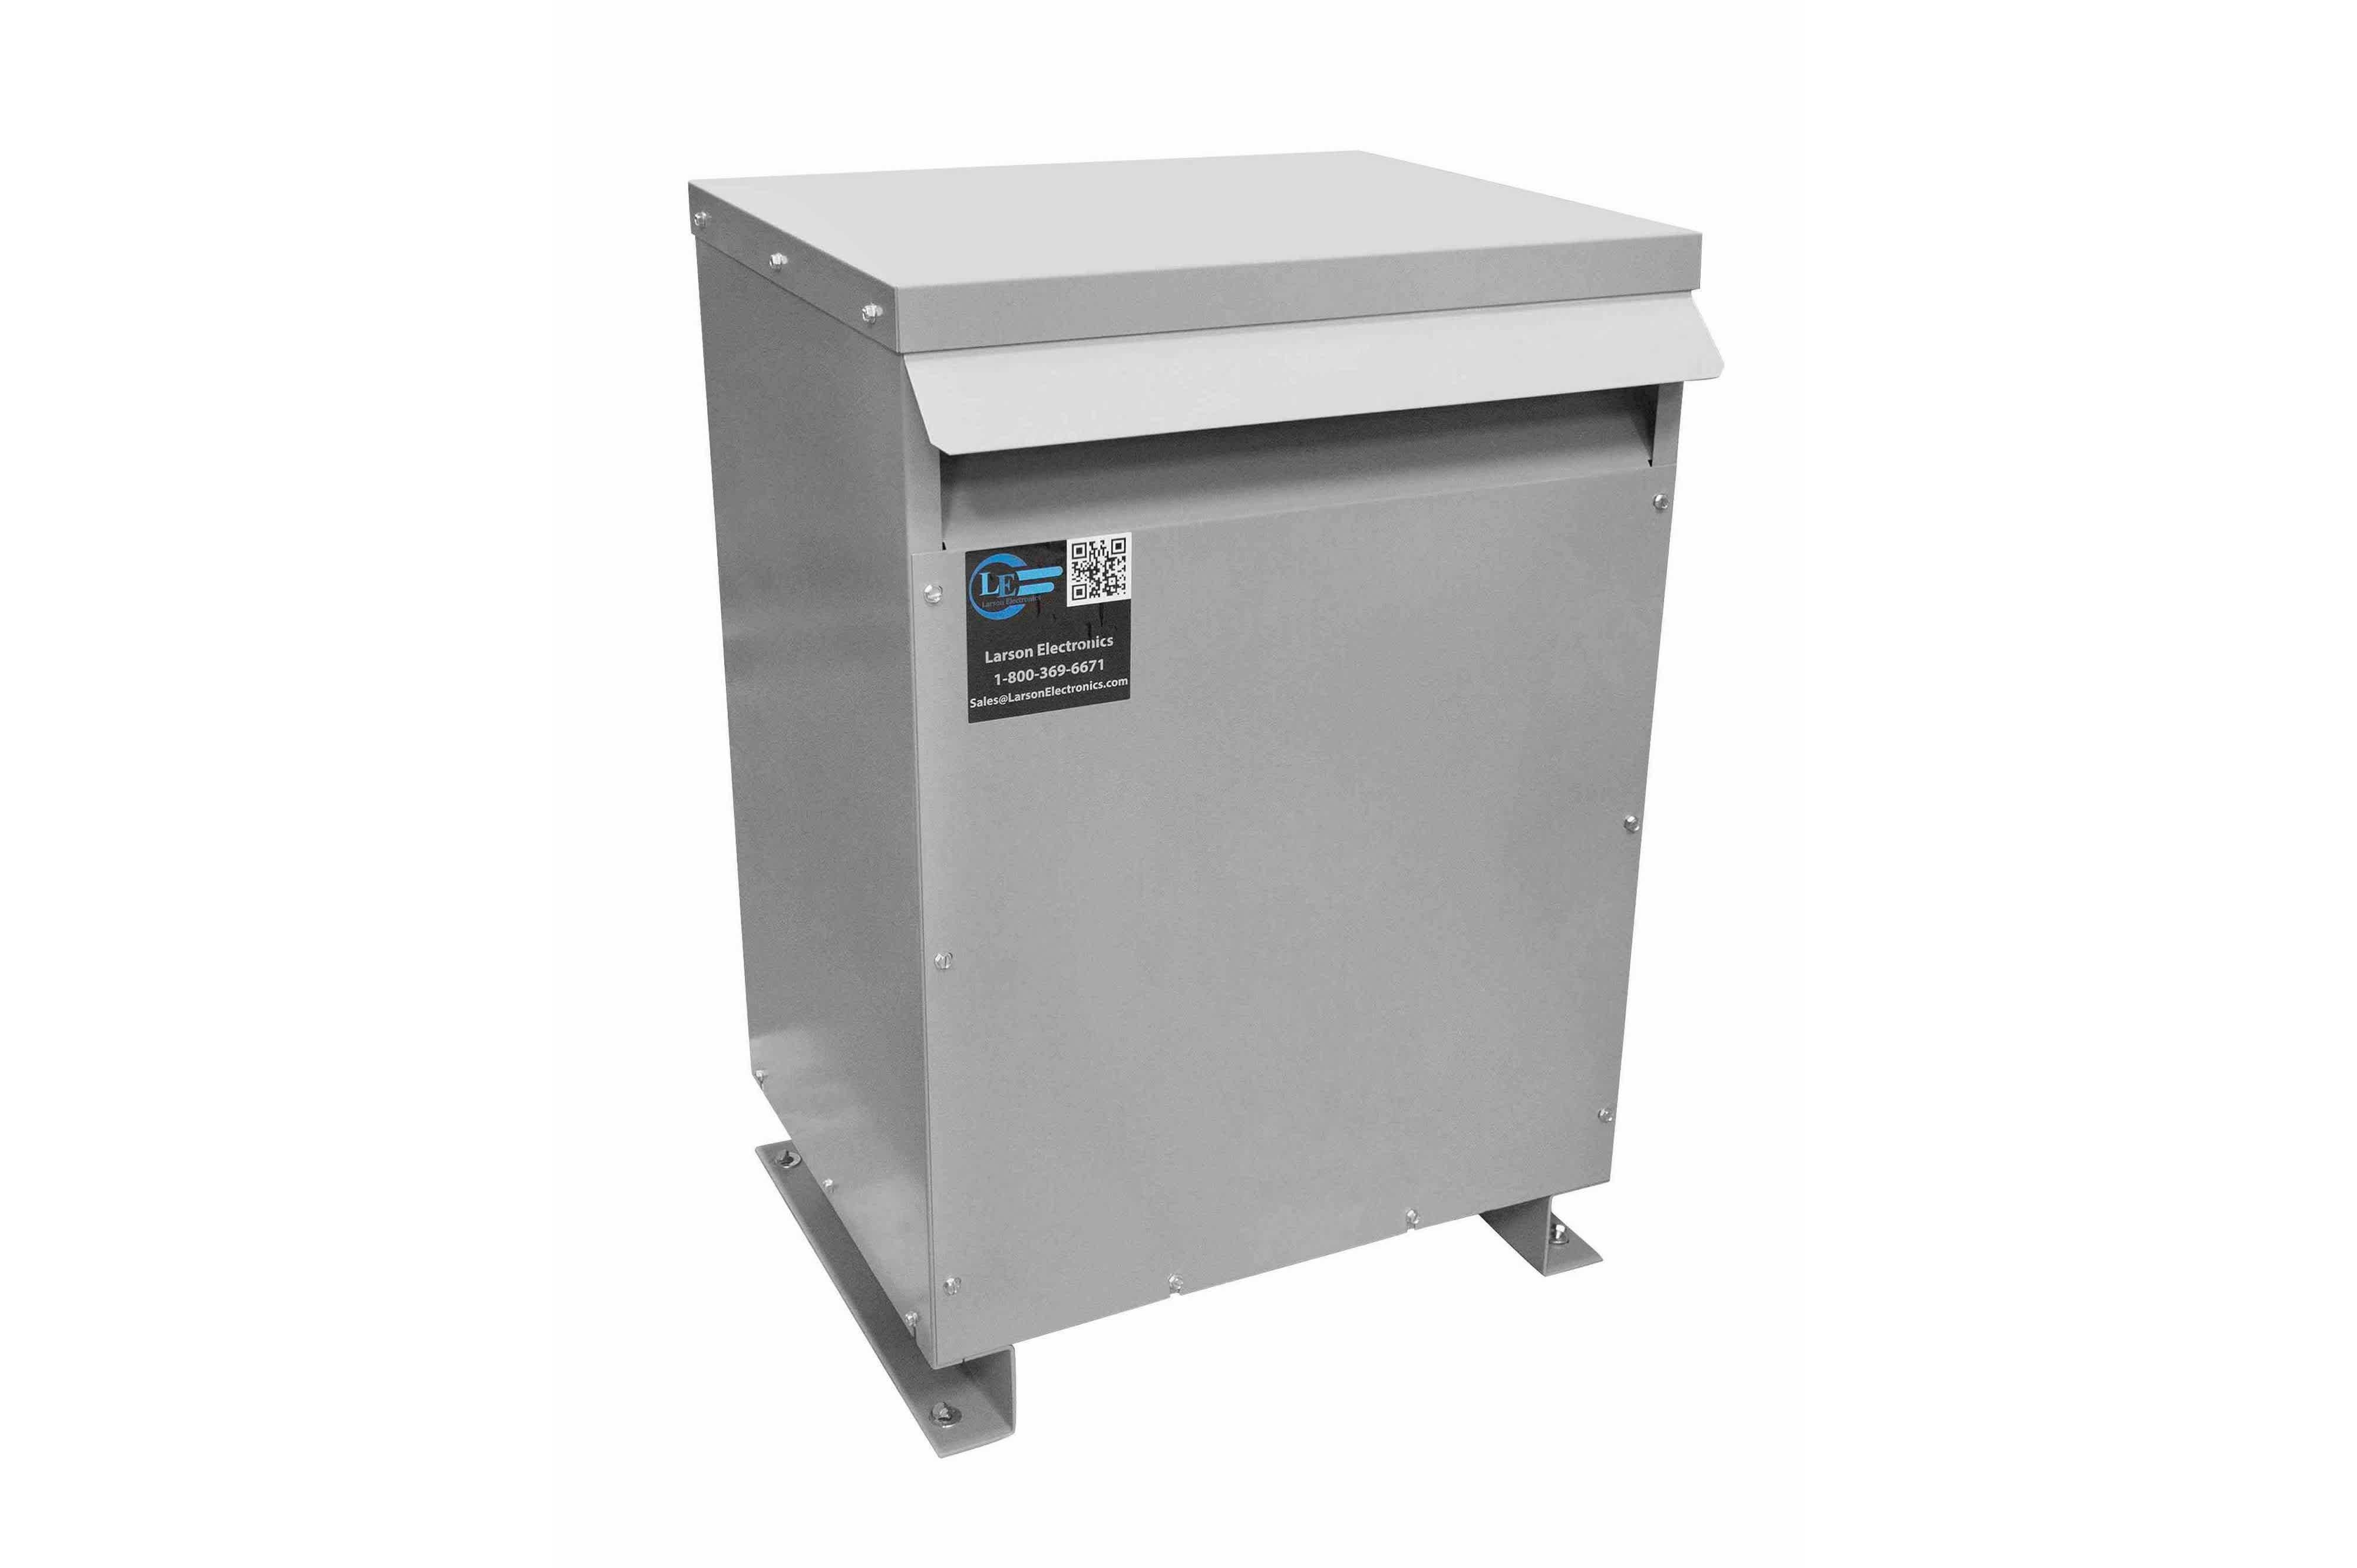 175 kVA 3PH Isolation Transformer, 600V Wye Primary, 208V Delta Secondary, N3R, Ventilated, 60 Hz